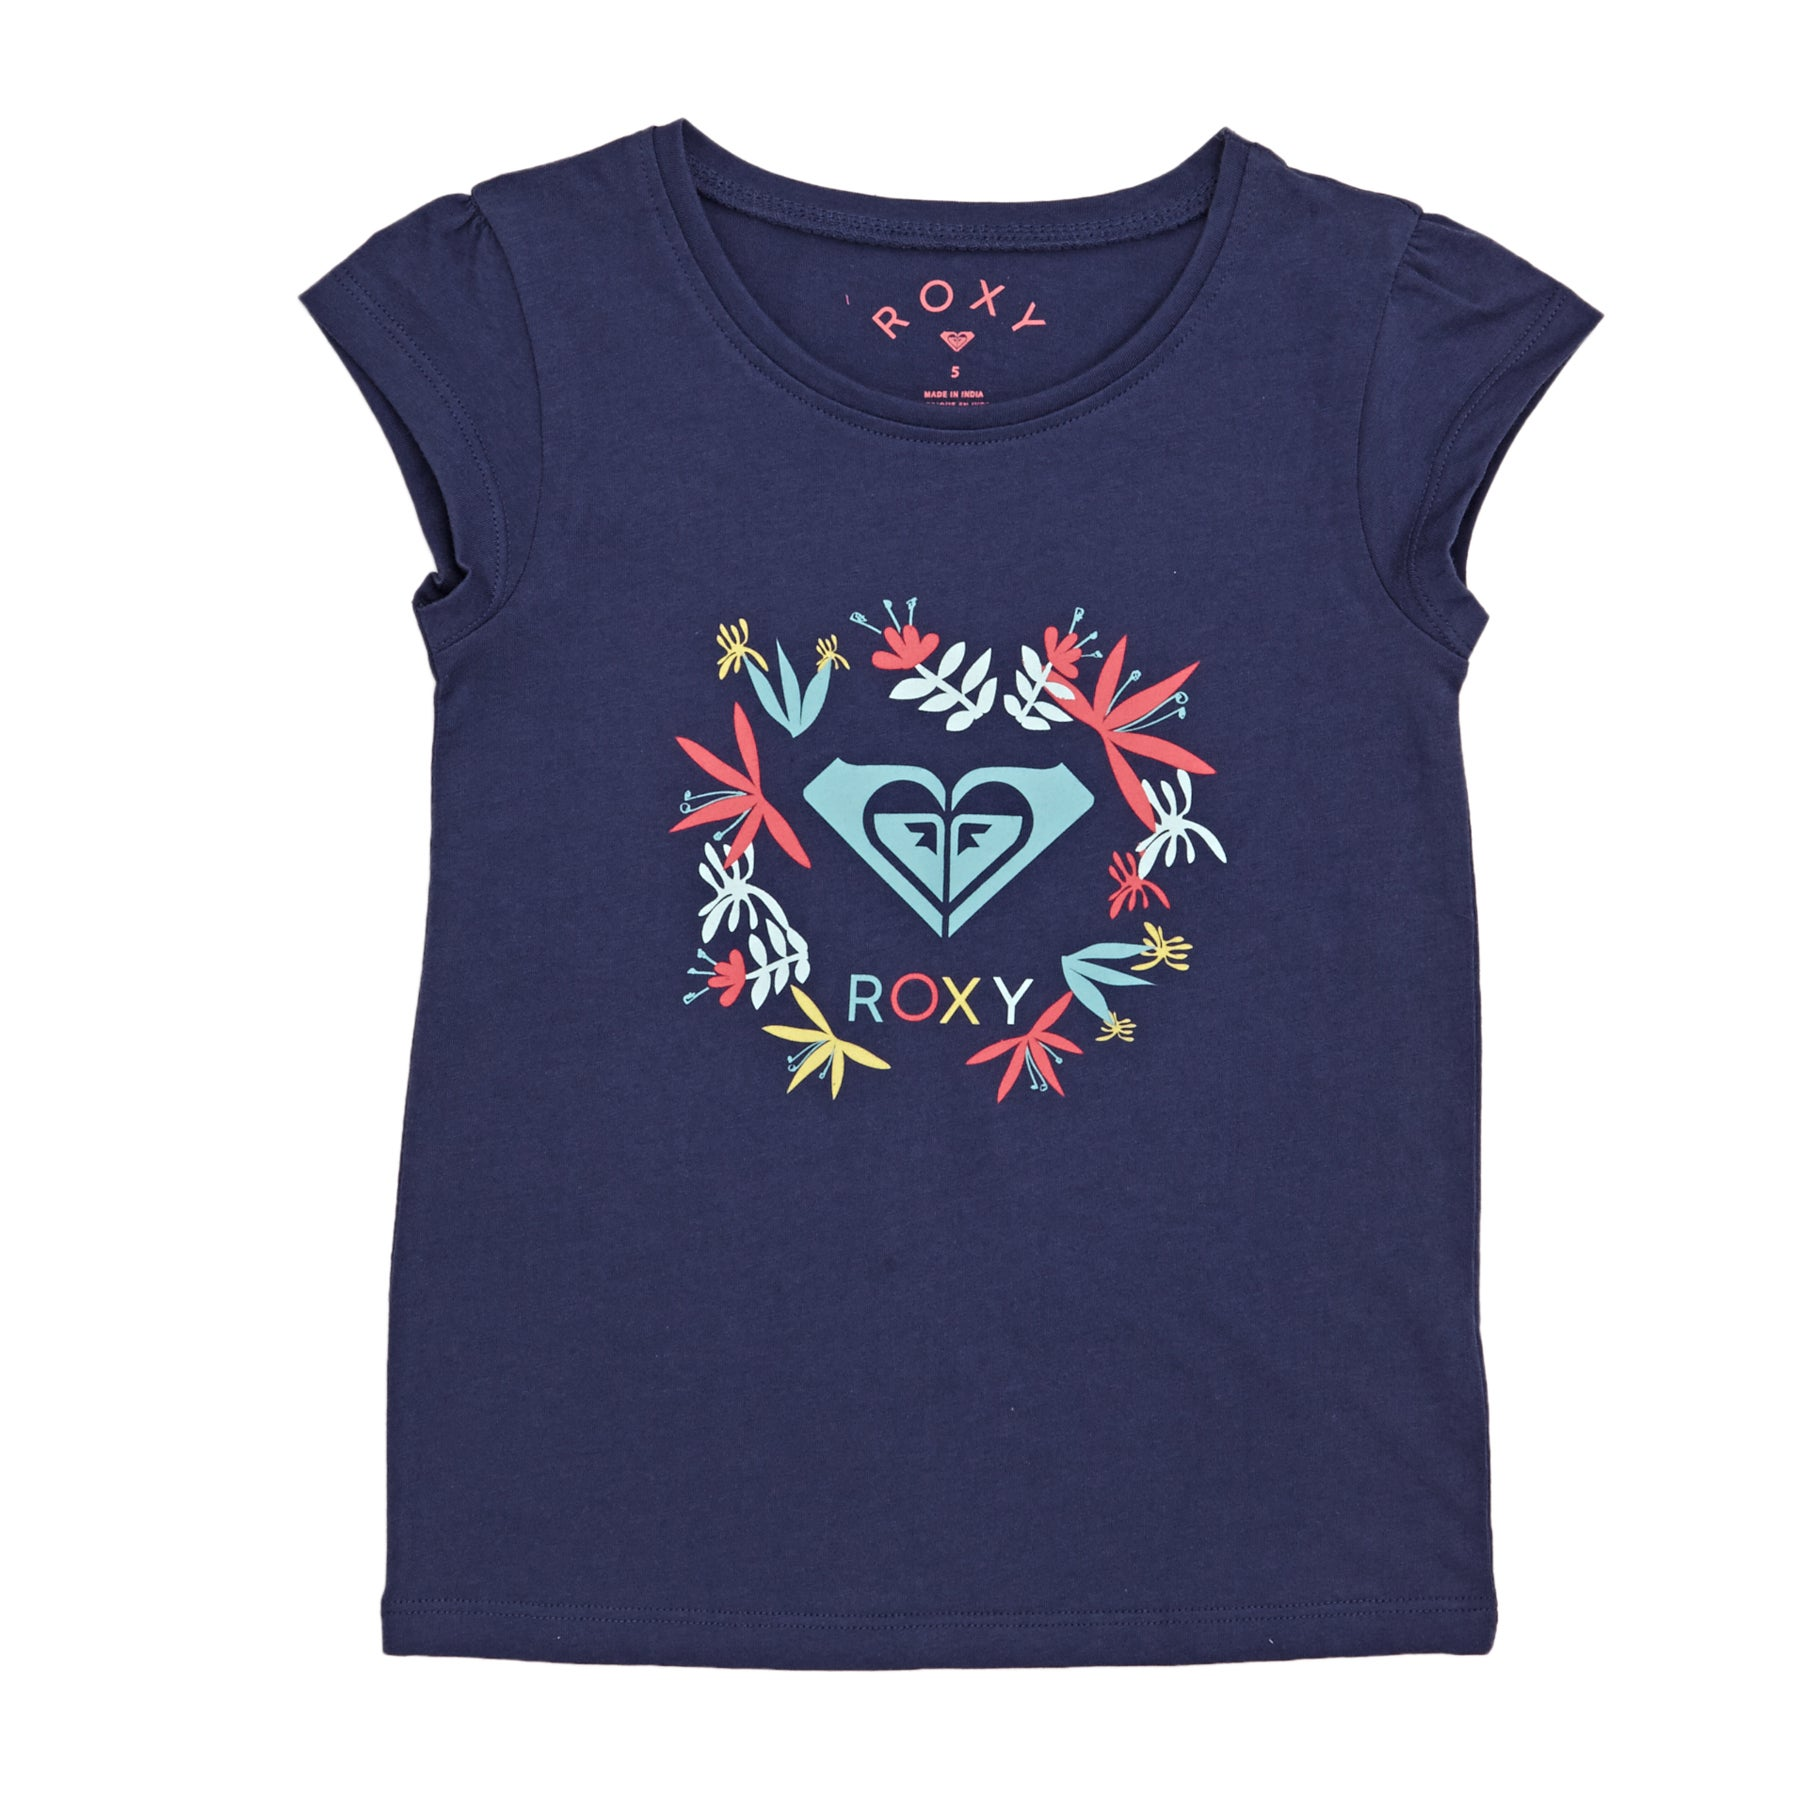 Roxy Moid Flower Logo Girls Short Sleeve T-Shirt - Deep Cobalt